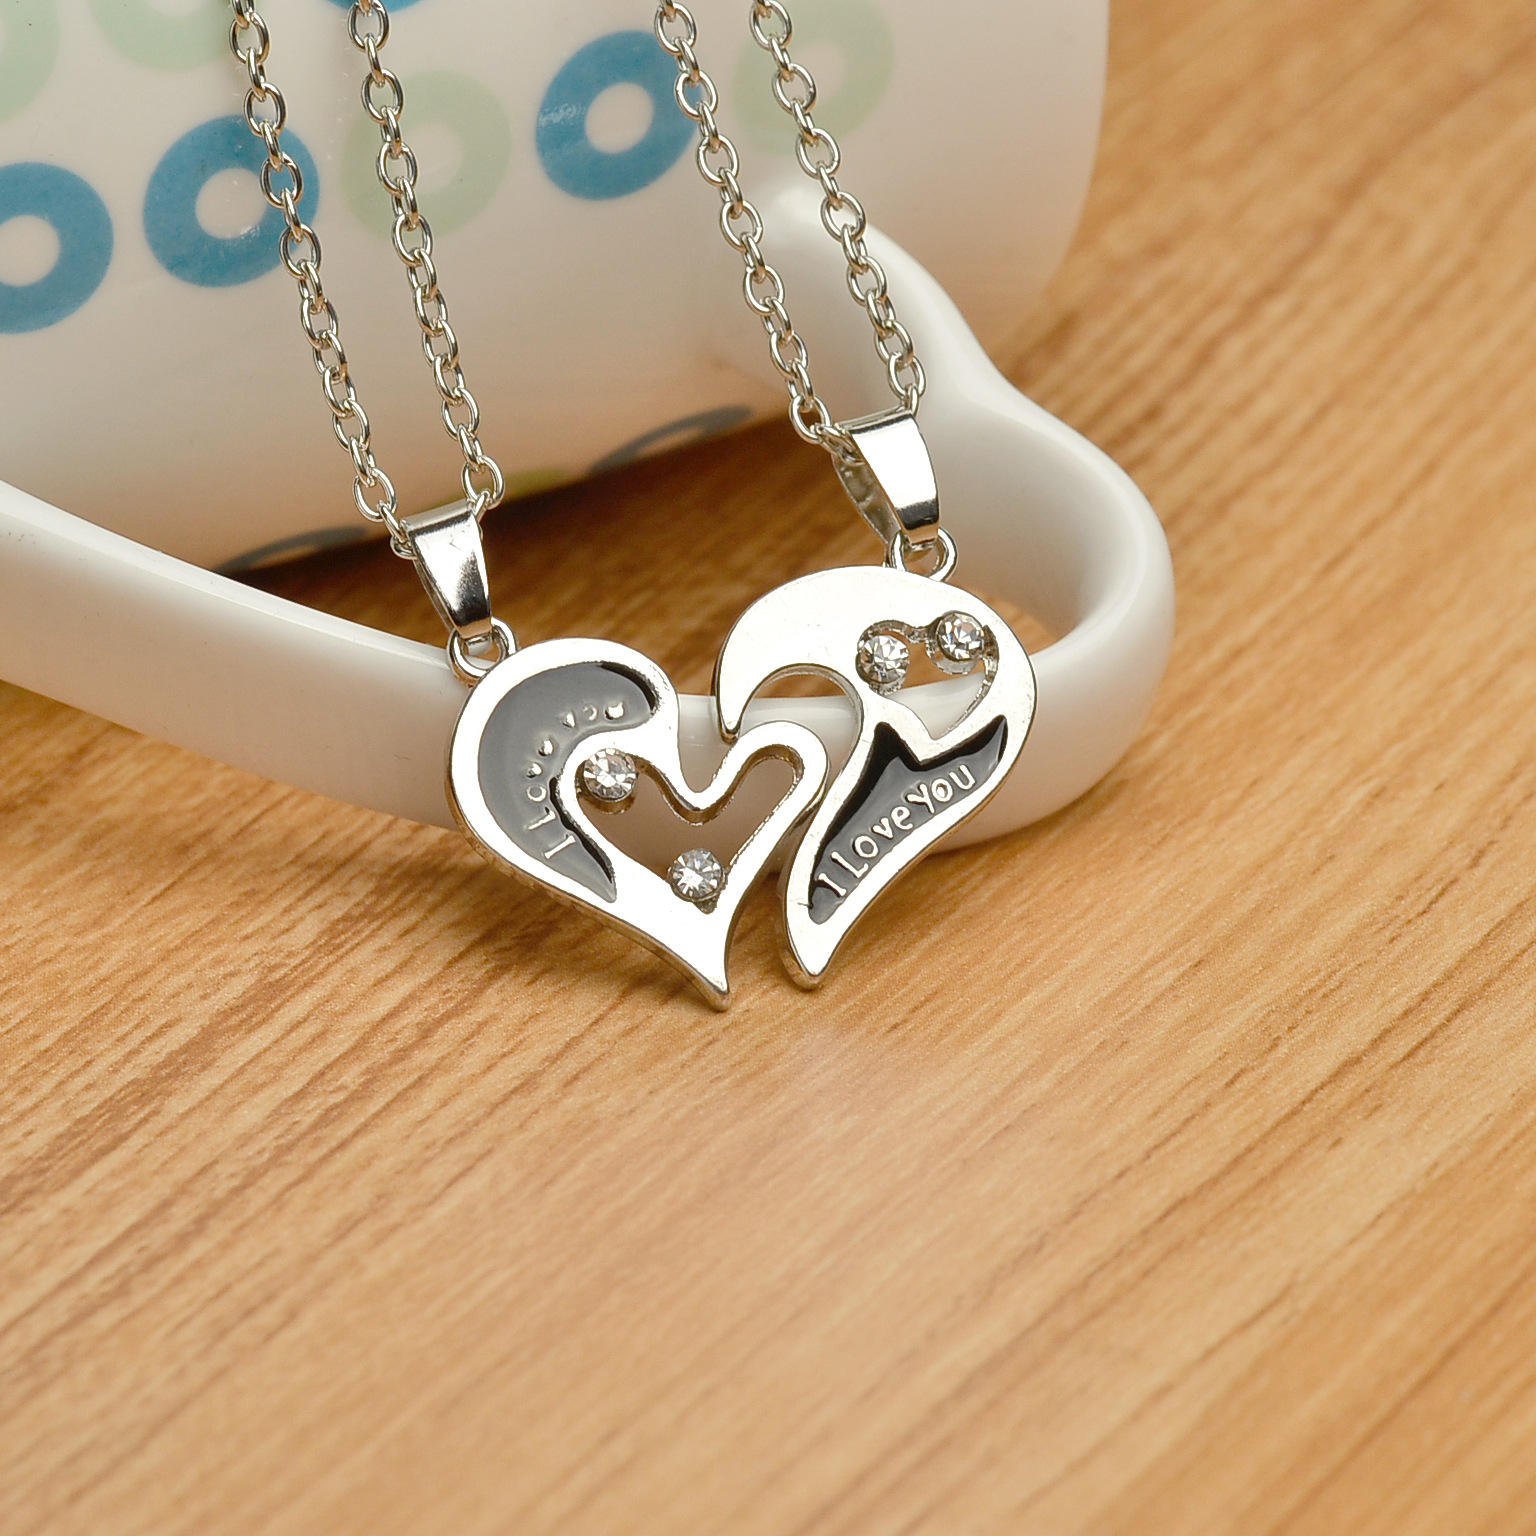 New peach heart diamond necklace clavicle chain fashion I loveyou moon couple love stitching necklace NHMO208166